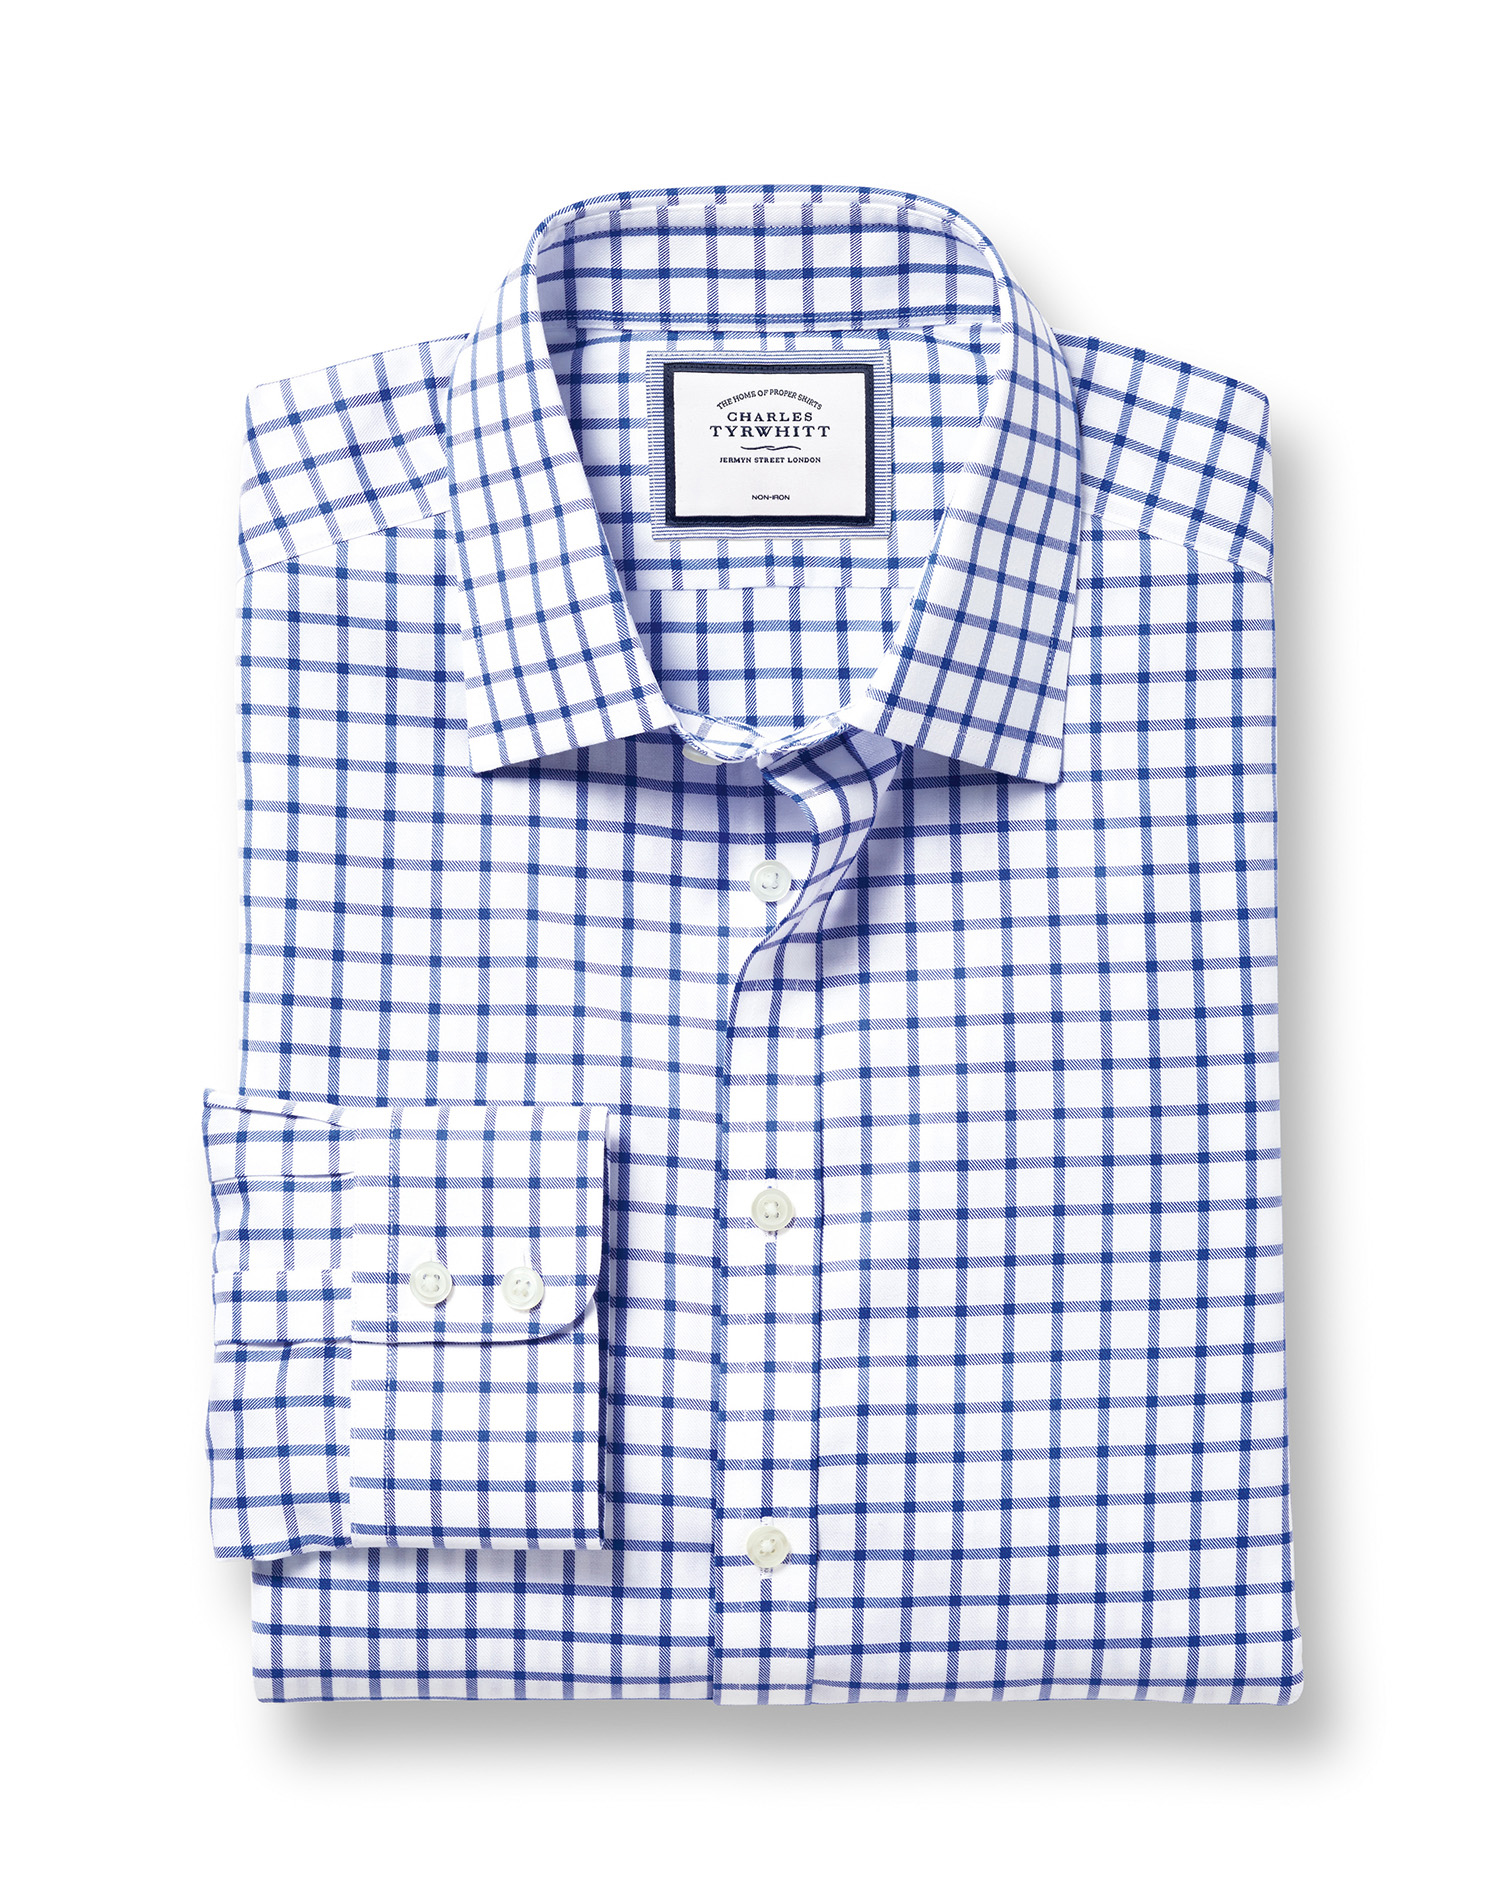 Classic Fit Non-Iron Twill Grid Check Royal Blue Cotton Formal Shirt Double Cuff Size 20/37 by Charl